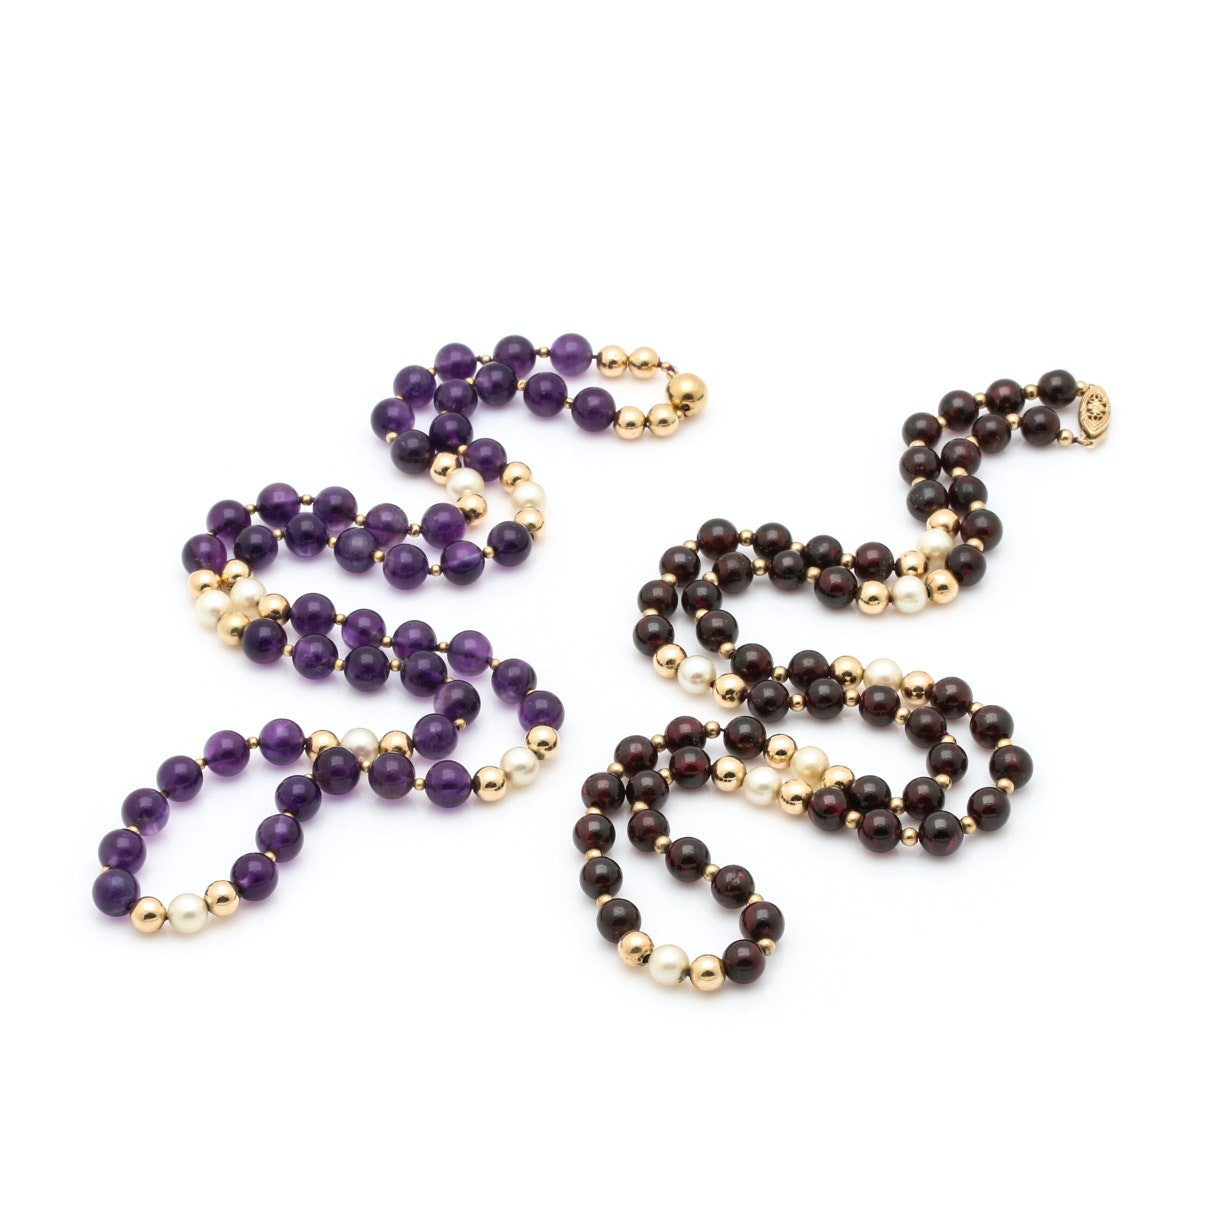 14K Yellow Garnet and Amethyst Necklaces with Cultured Pearls